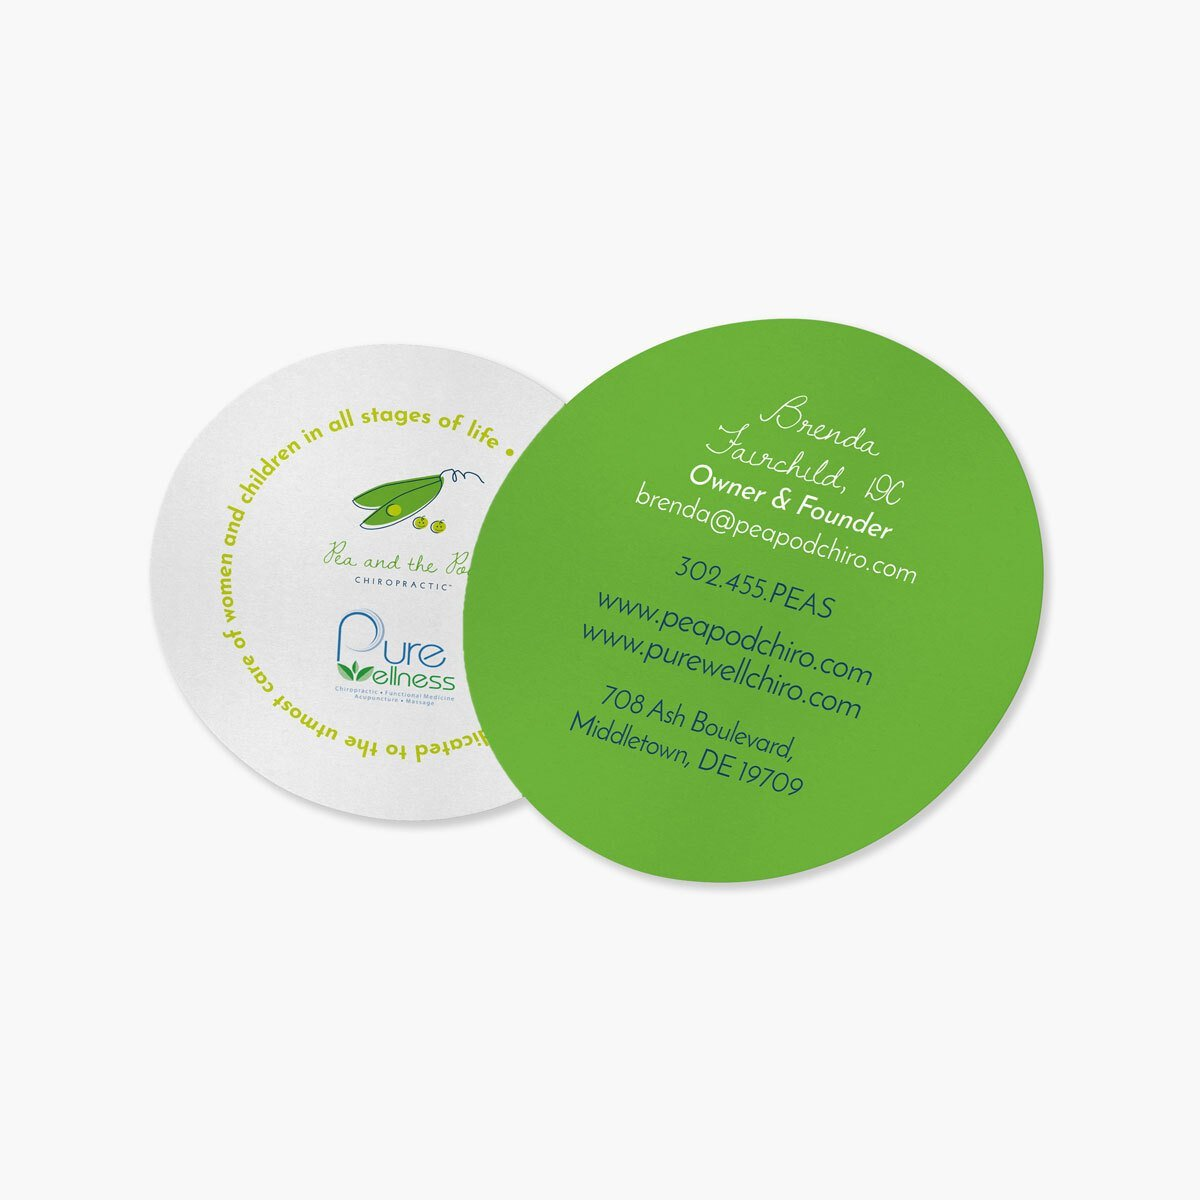 Pea and the Pod Chiropractic Business Cards Design by BrandSwan, a graphic design company